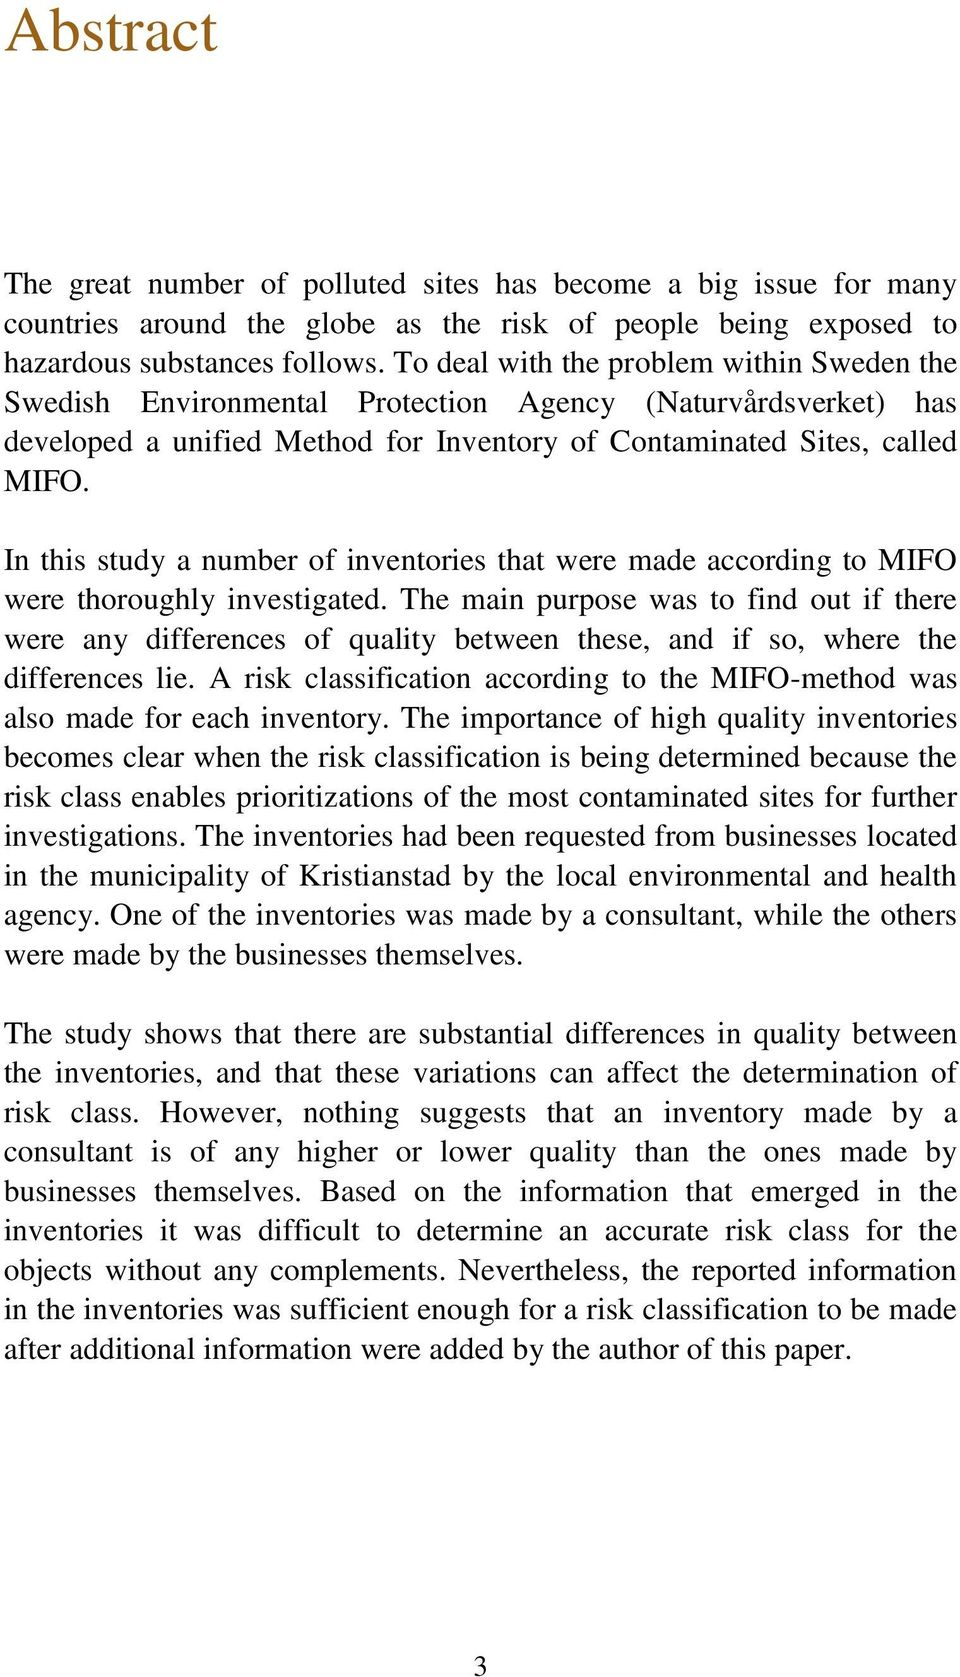 In this study a number of inventories that were made according to MIFO were thoroughly investigated.